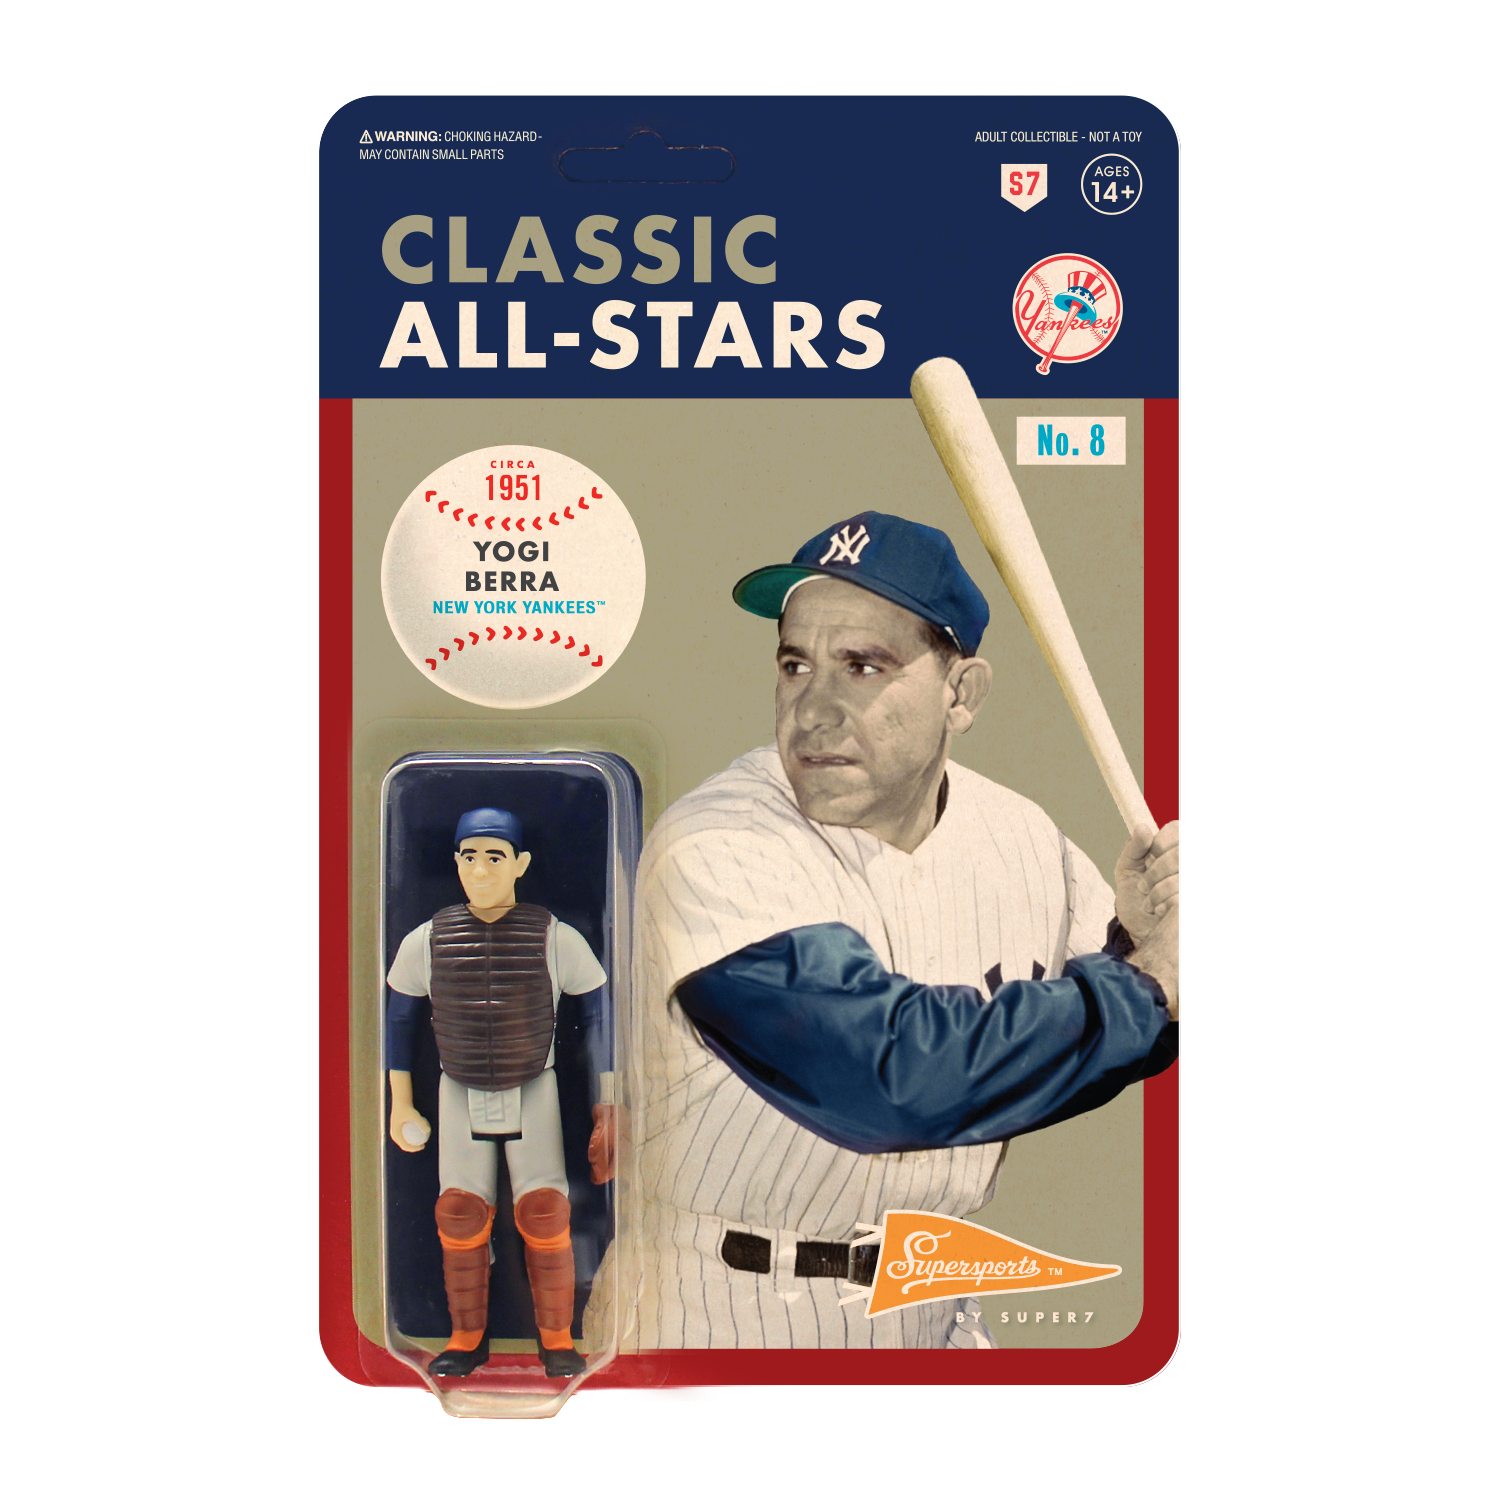 Mlb Classic Reaction Figure Yogi Berra Catcher New York Yankees